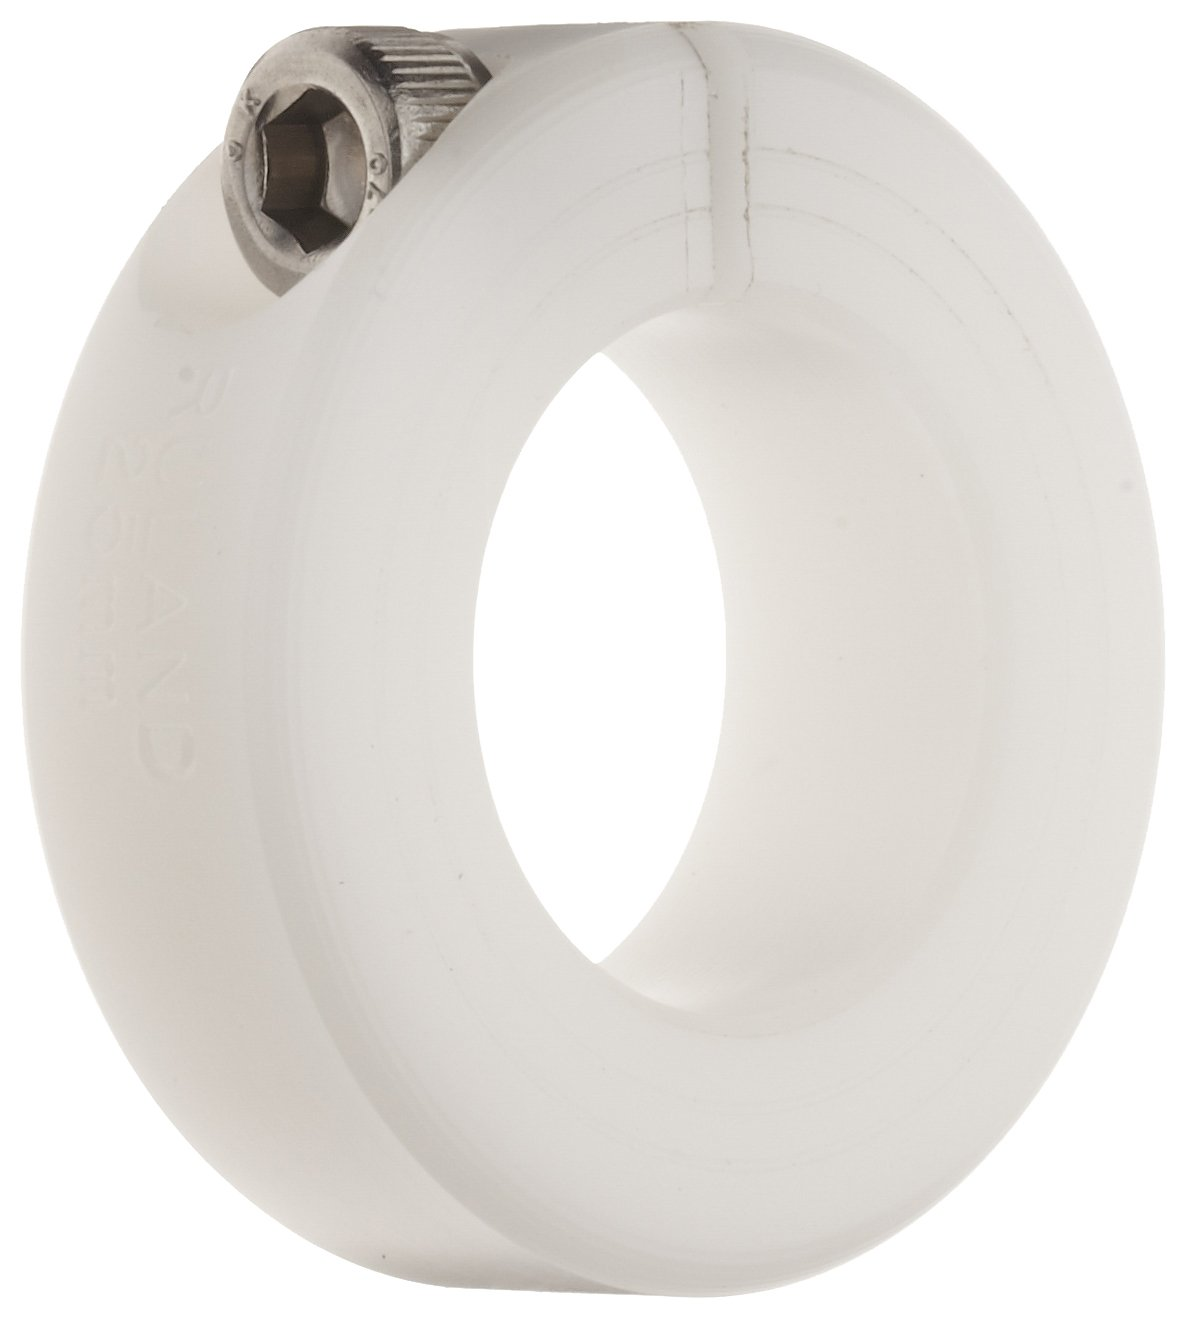 Ruland MCL-6-P One-Piece Clamping Shaft Collar, Plastic, Metric, 6mm Bore, 16mm OD, 9mm Width